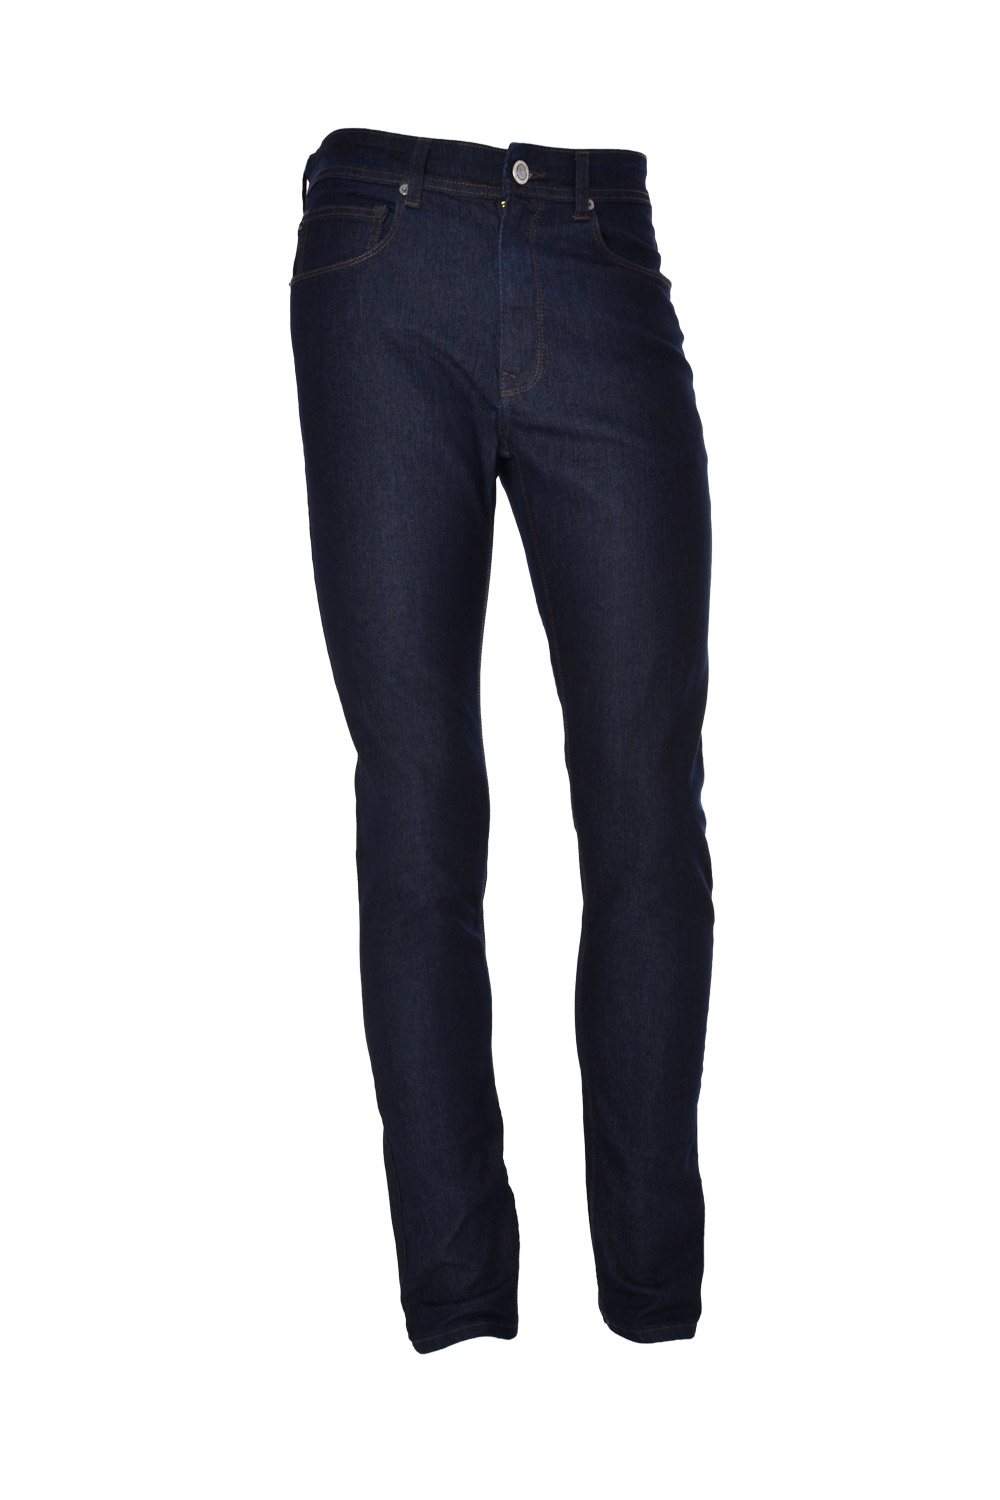 CALÇA JEANS BLUES SLIM POLIALGODAO & ELASTANO STRETCH LISO BLACK BLUE